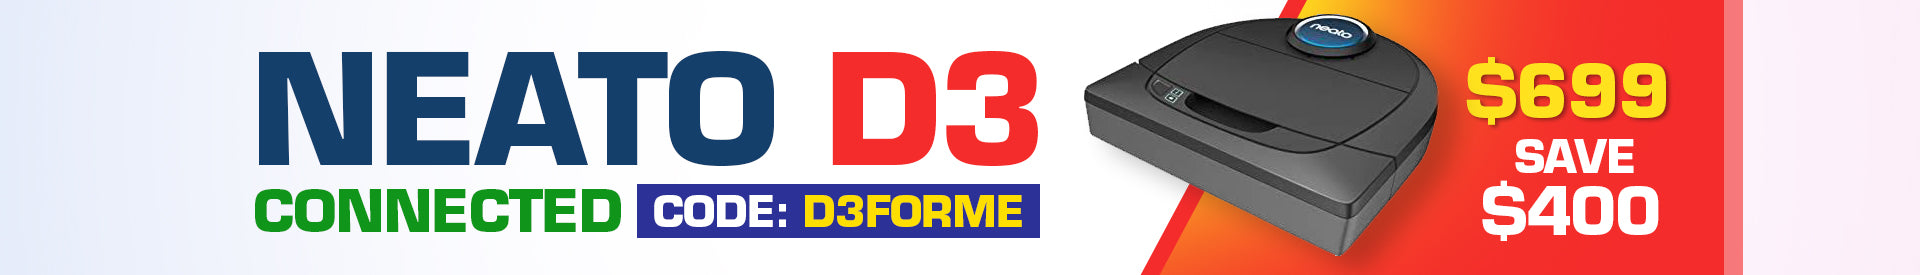 Neato D3 Connected $400 OFF Use Code D3FORME at Checkout | Robot Specialist